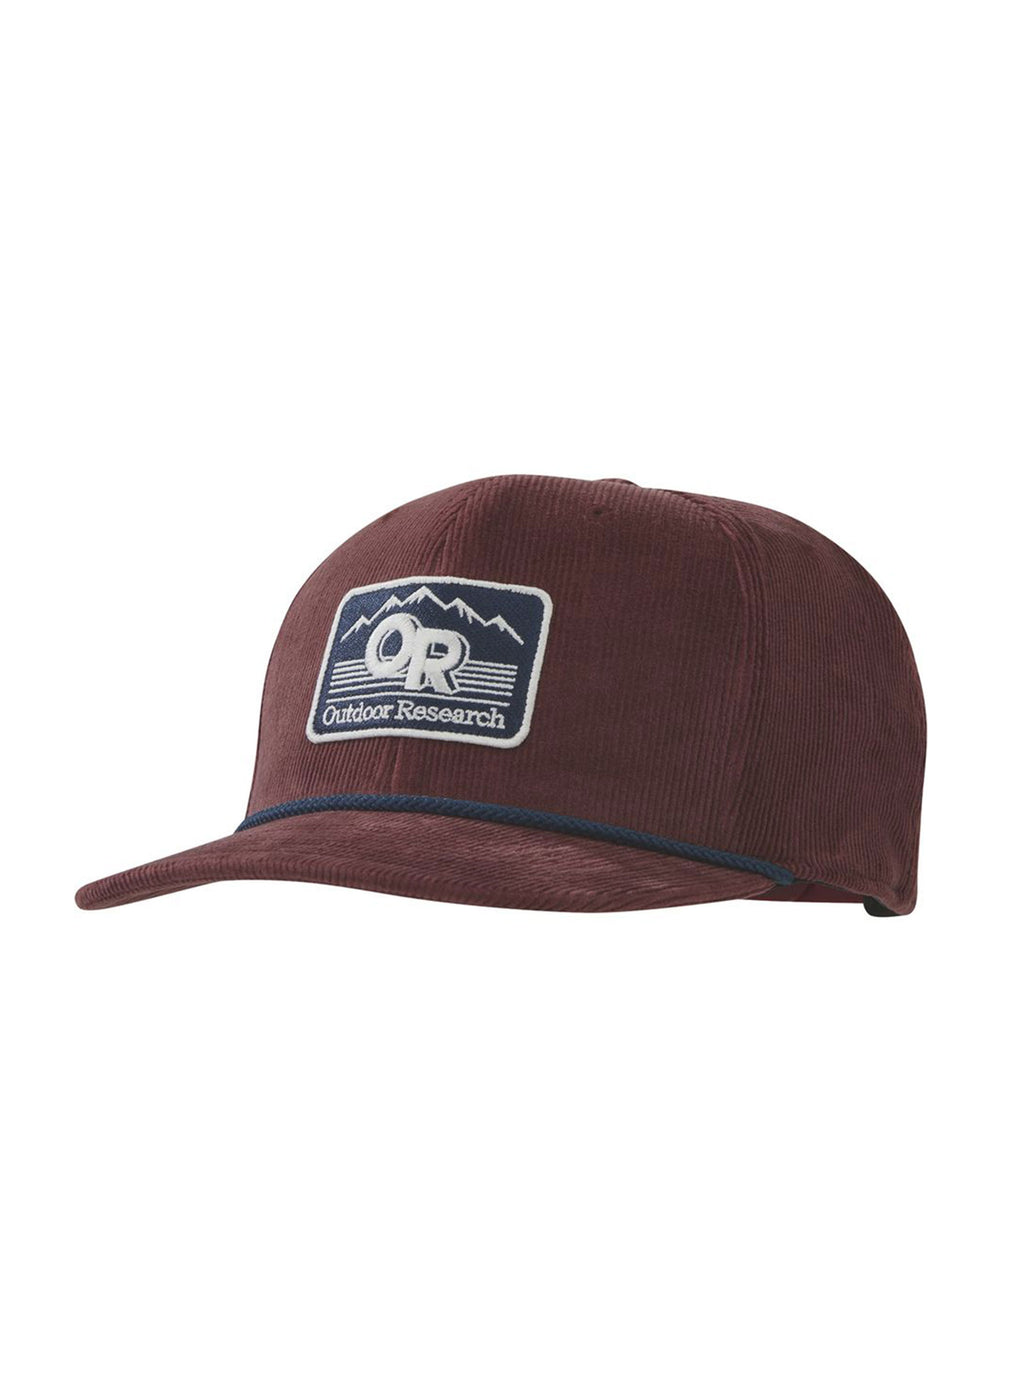 Outdoor Research Advocate Cord Trucker Cap